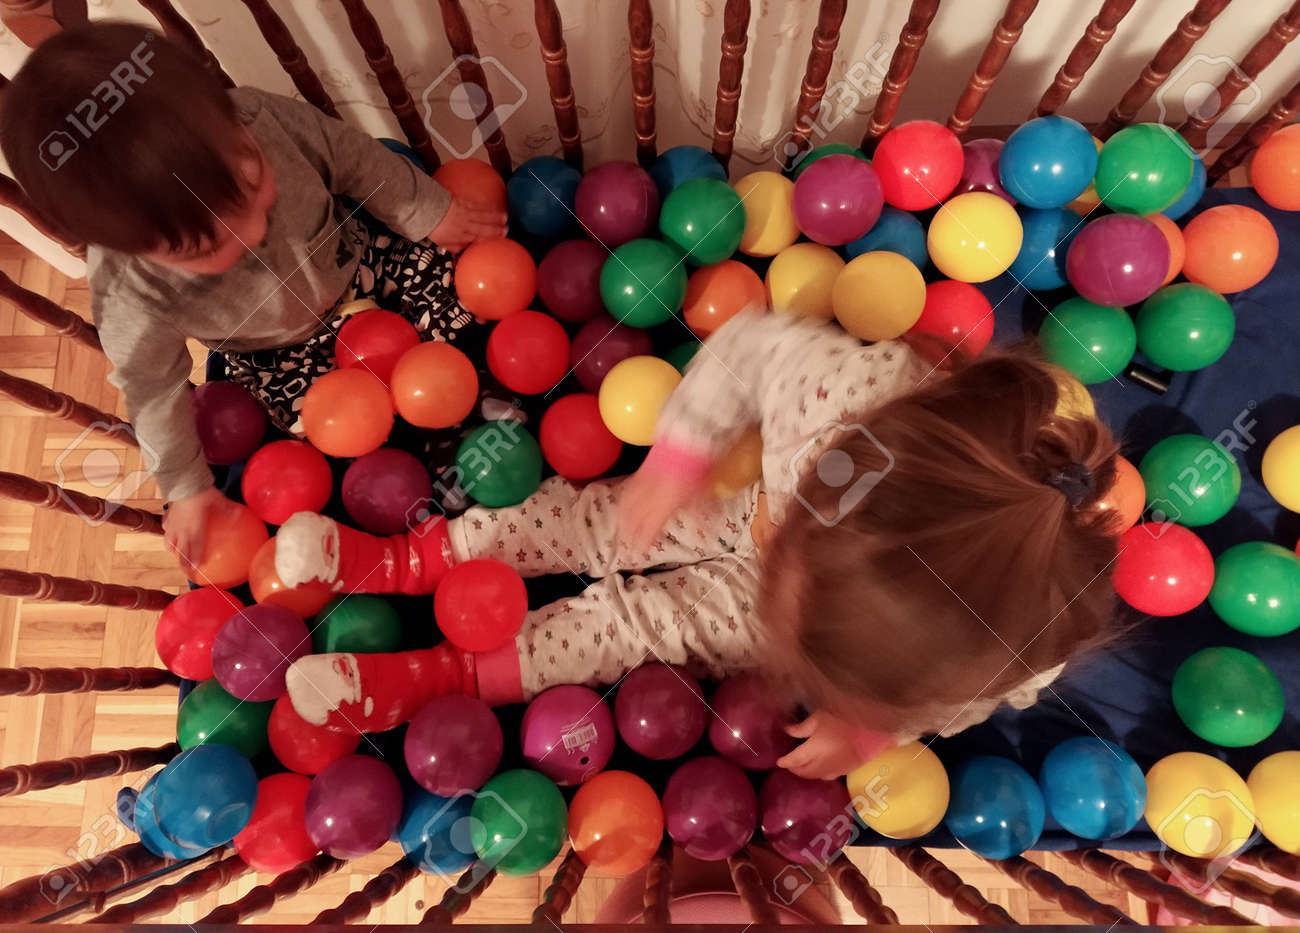 Kids playing with balls - 146871241